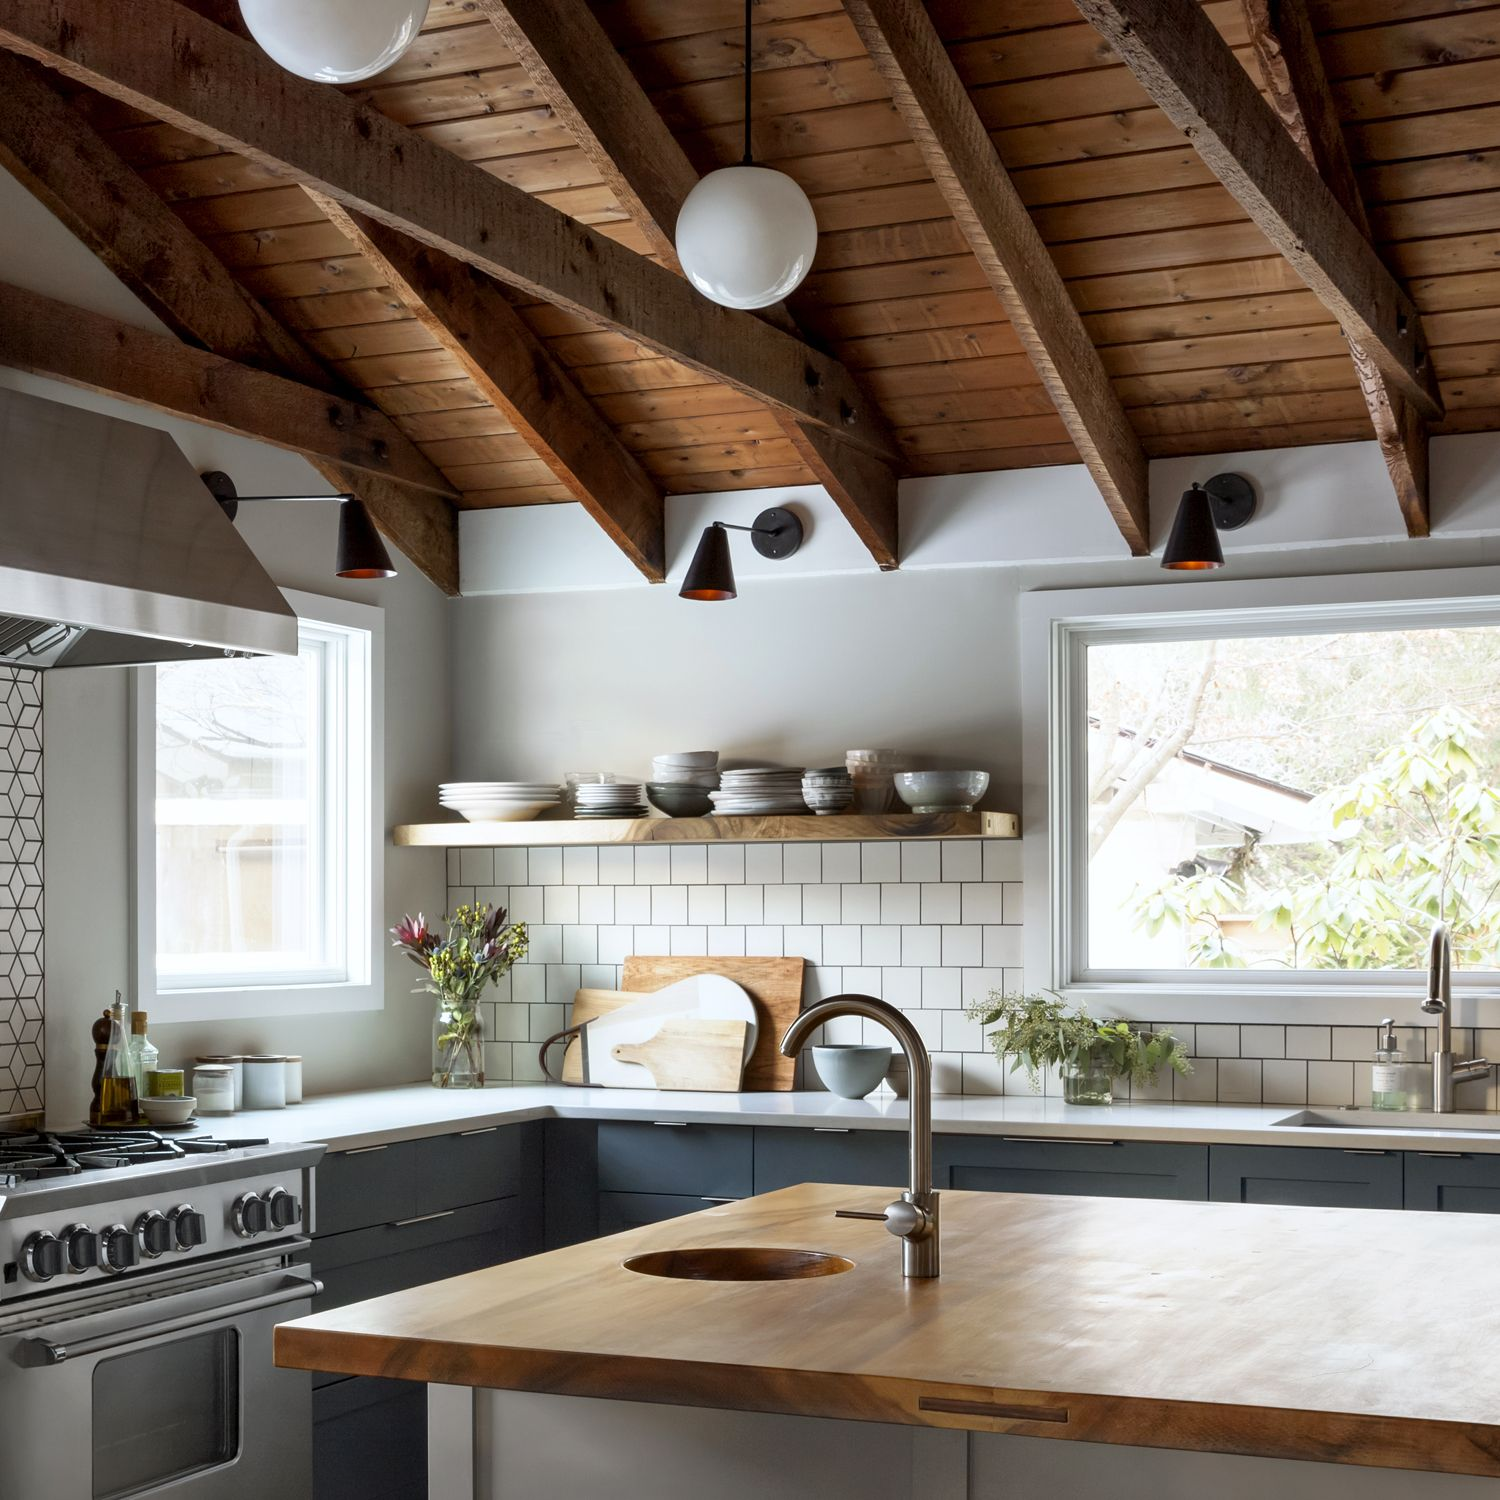 Kitchen Lighting Vaulted Ceiling: Home Decor, Vaulted Ceiling